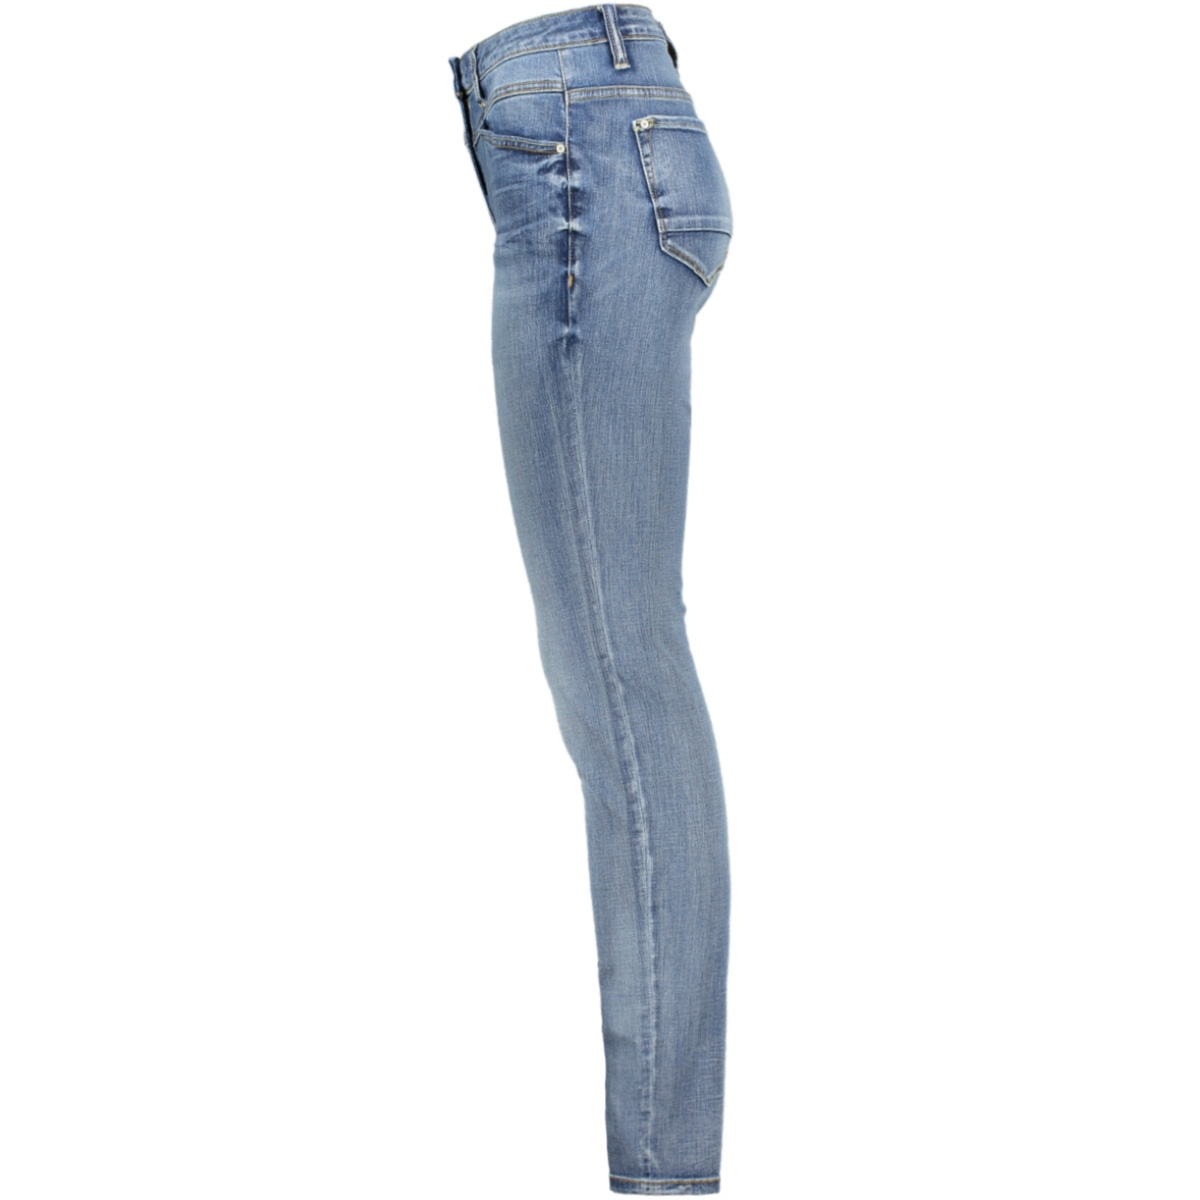 high waist skinny jeans 24001616 sandwich jeans 40101 medium blue denim